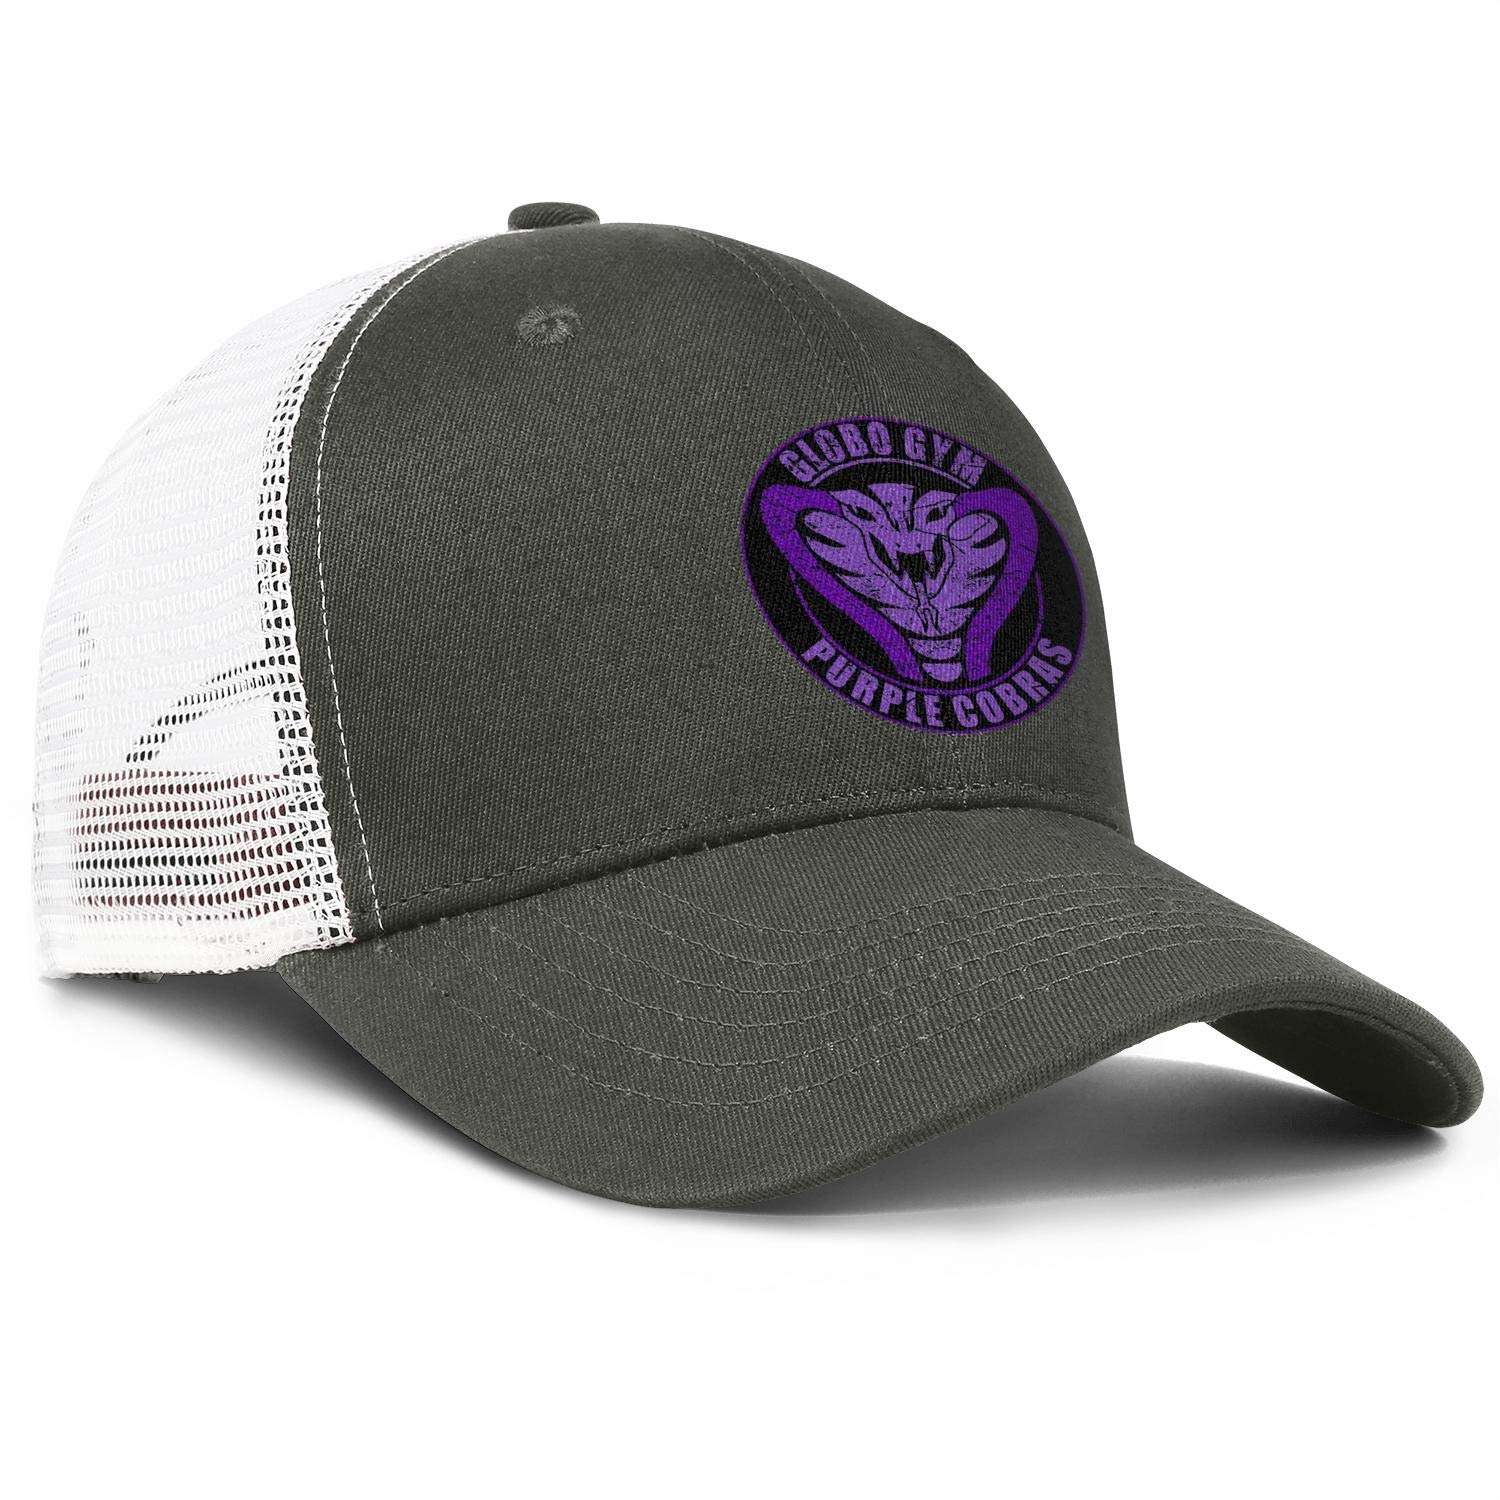 Mens Luxury Ball Hats Globo Gym Purple Cobras Logo Women Visor Flat Cap